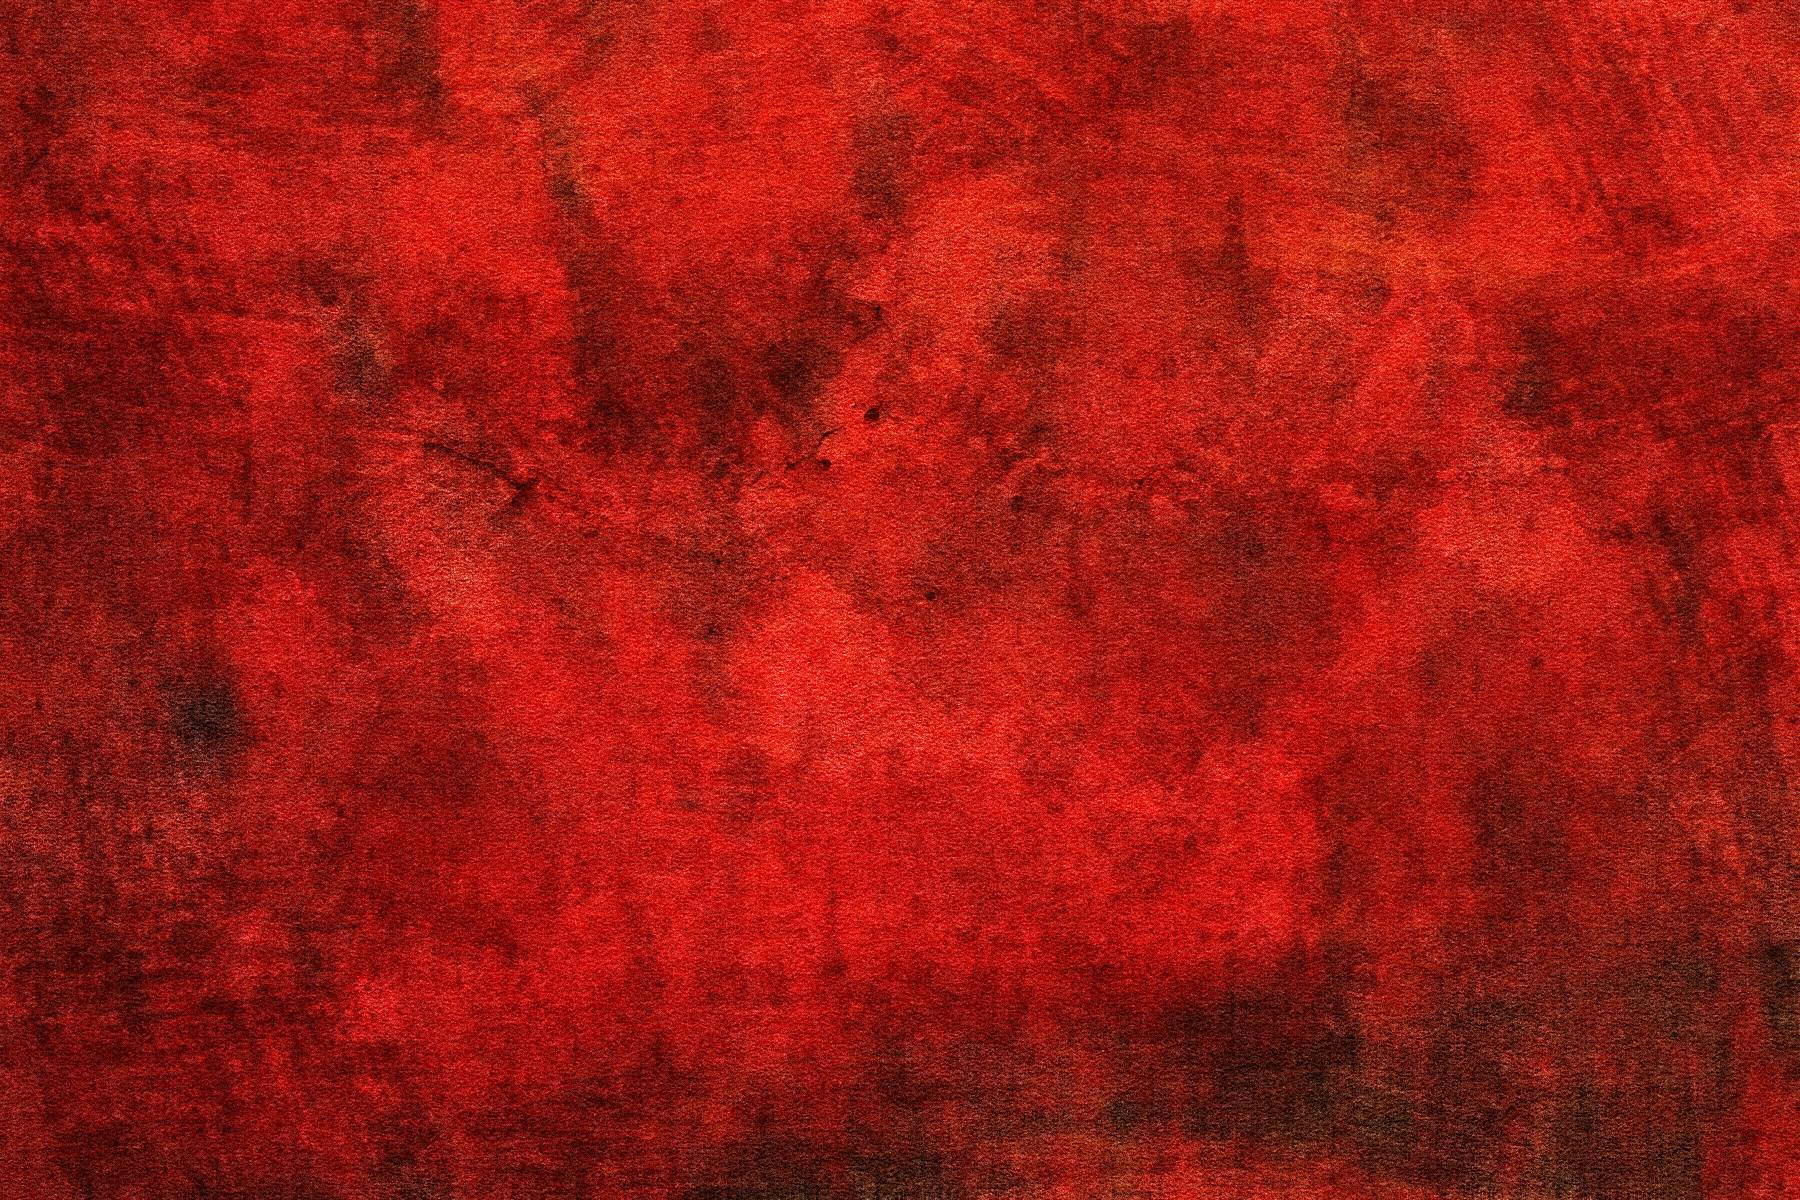 red textured background hd - photo #7